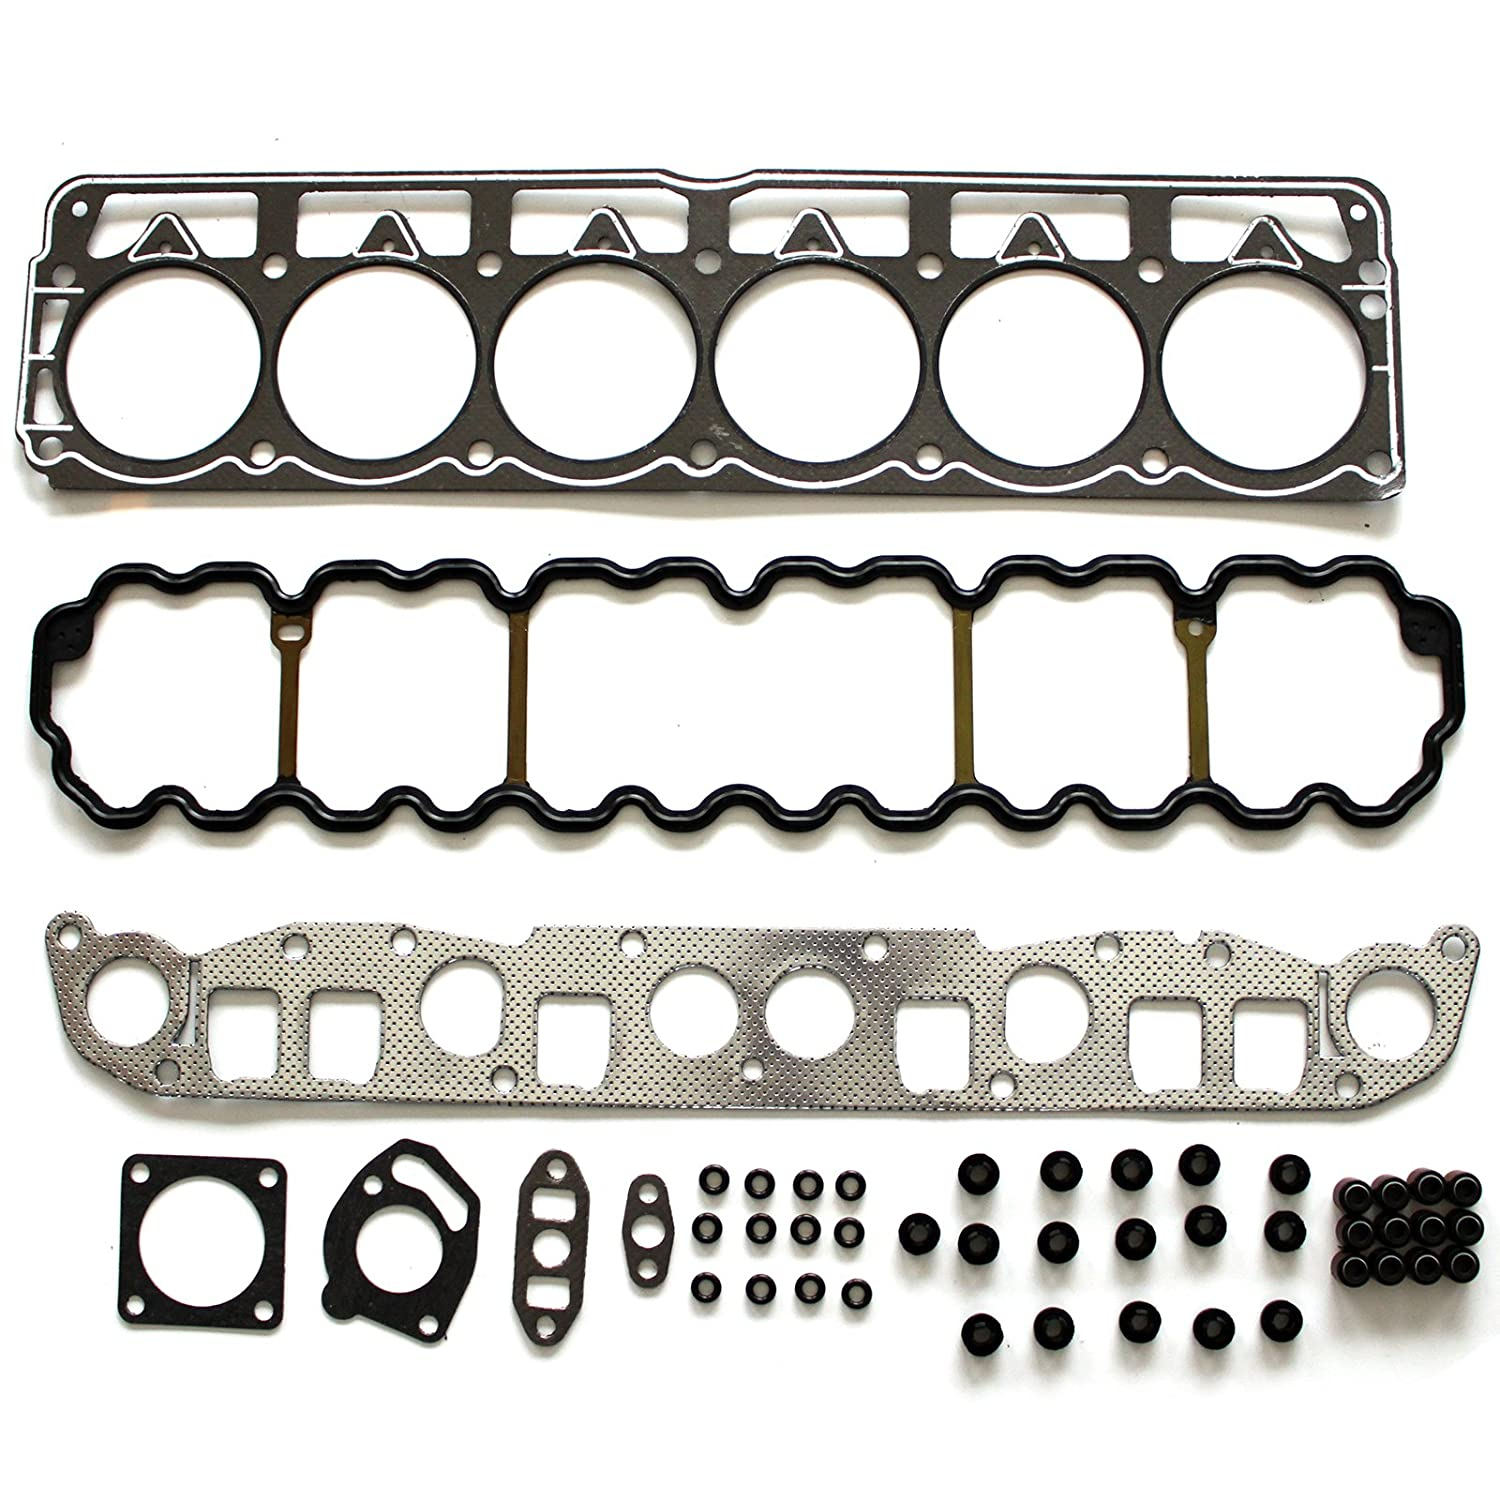 SCITOO Replacement for Head Gasket Kit fit Grand Cherokee Jeep TJ Wrangler 1999-2003 Engine Valve Covers Gaskets Set Kits 058069-5206-1734506373